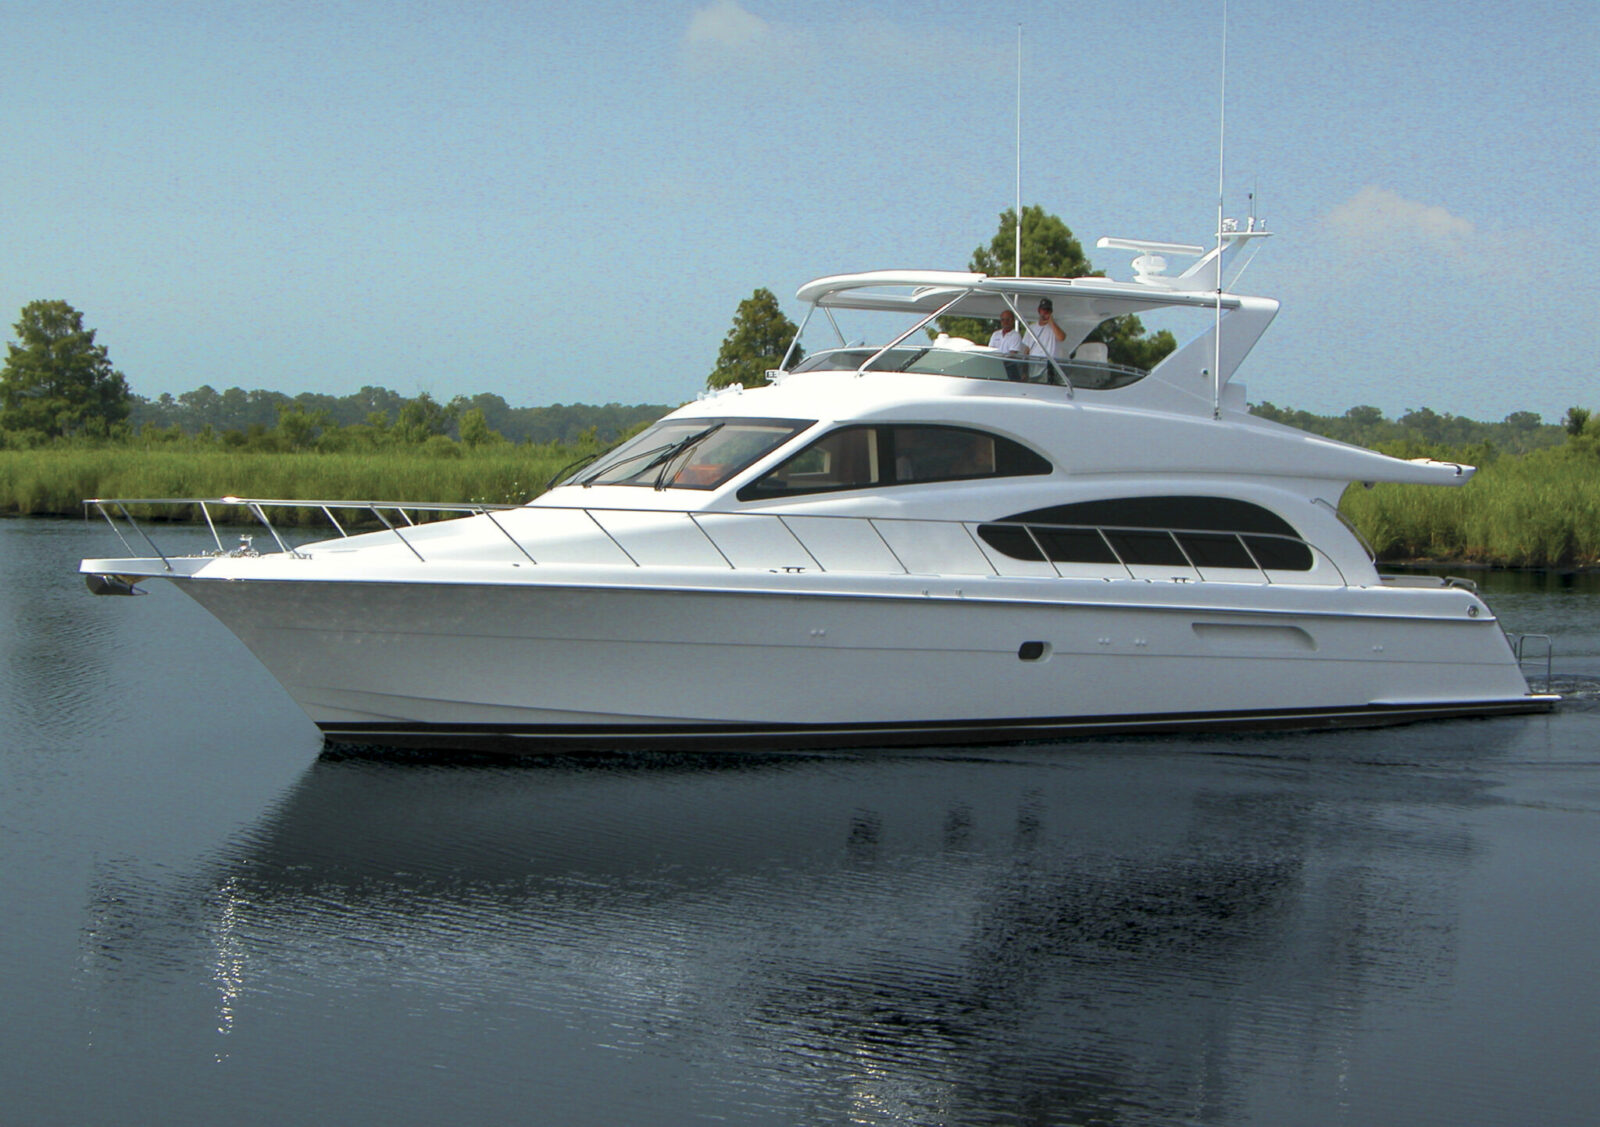 Luxury yacht for Sale | Juliette IV by Hatteras Yachts